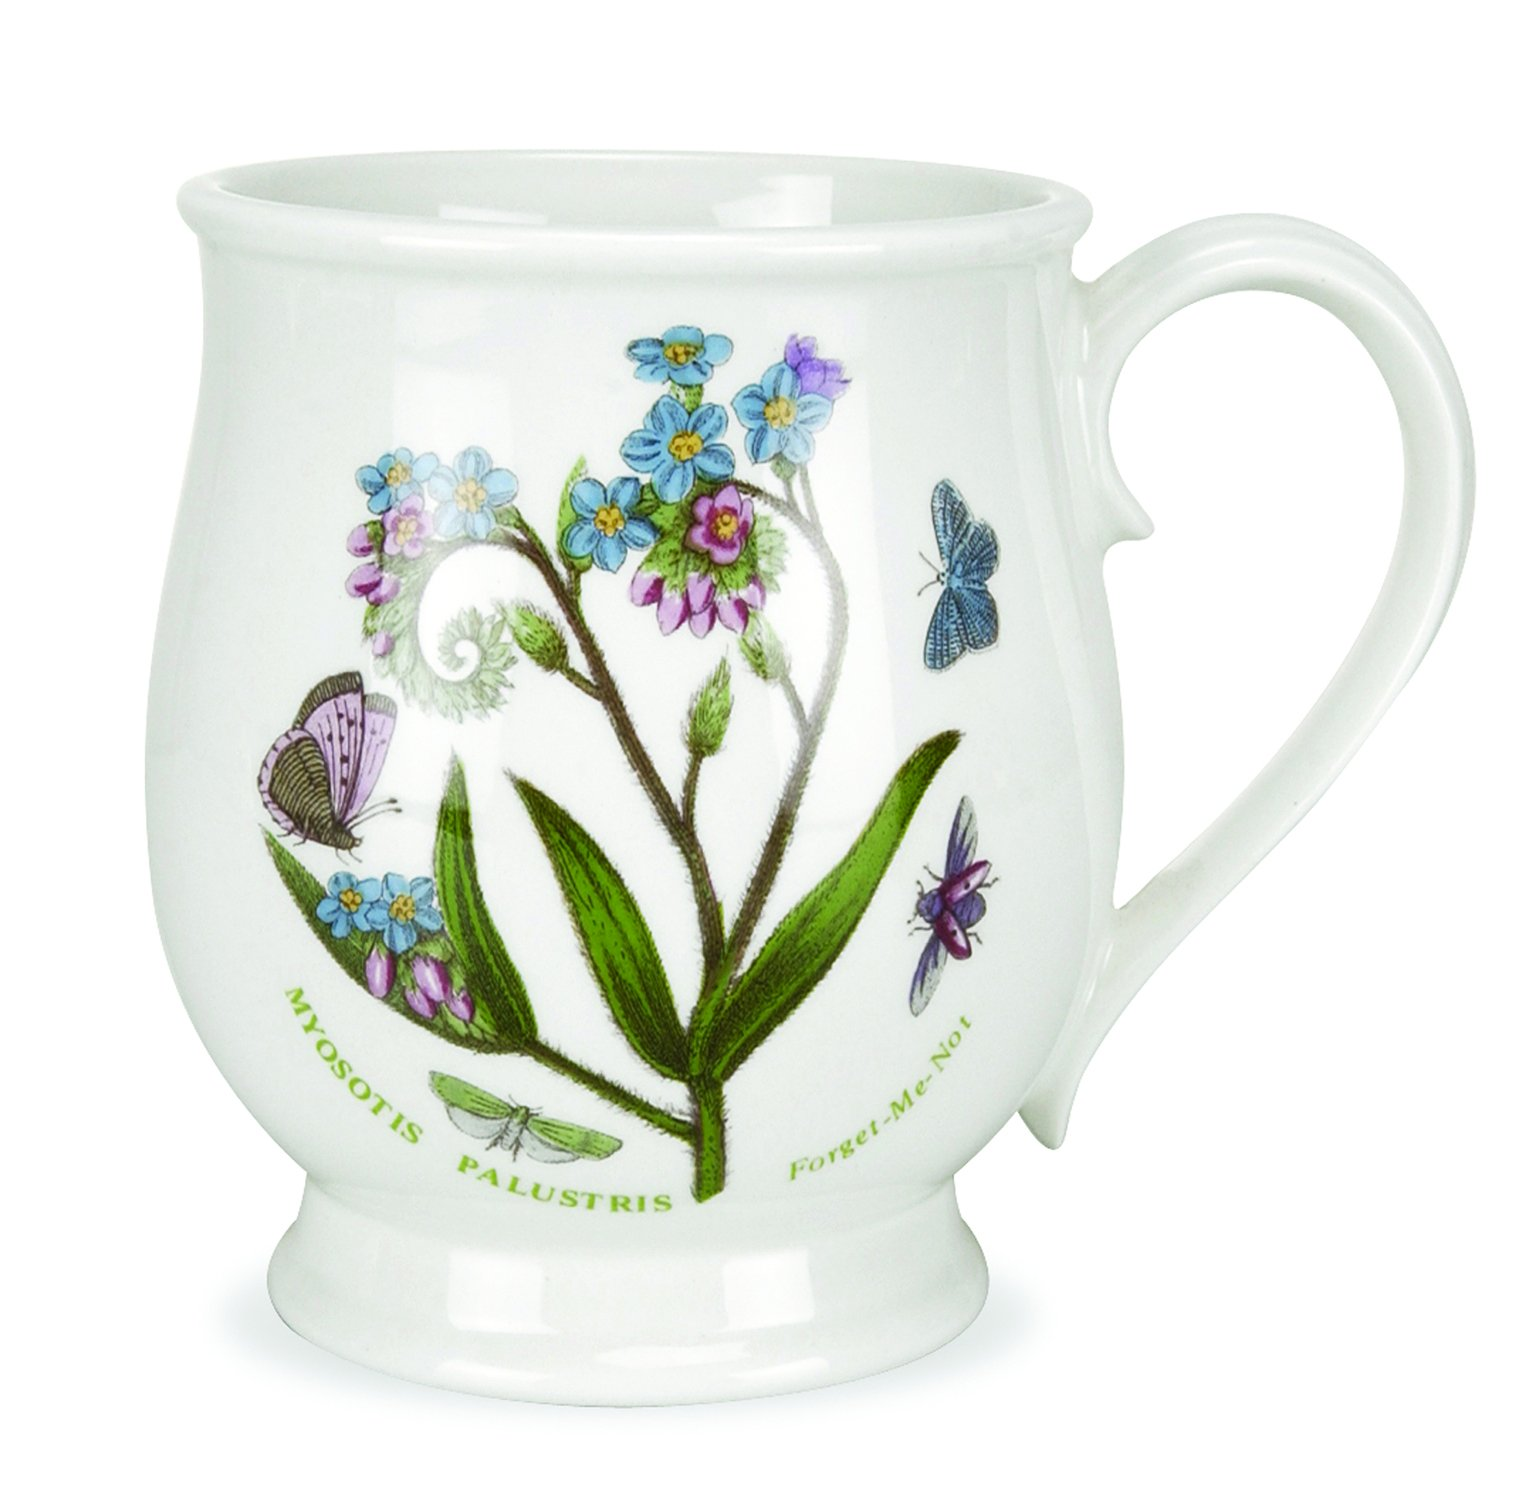 Portmeirion Botanic Garden Bristol Mug 14 Oz. Assorted Set of 6